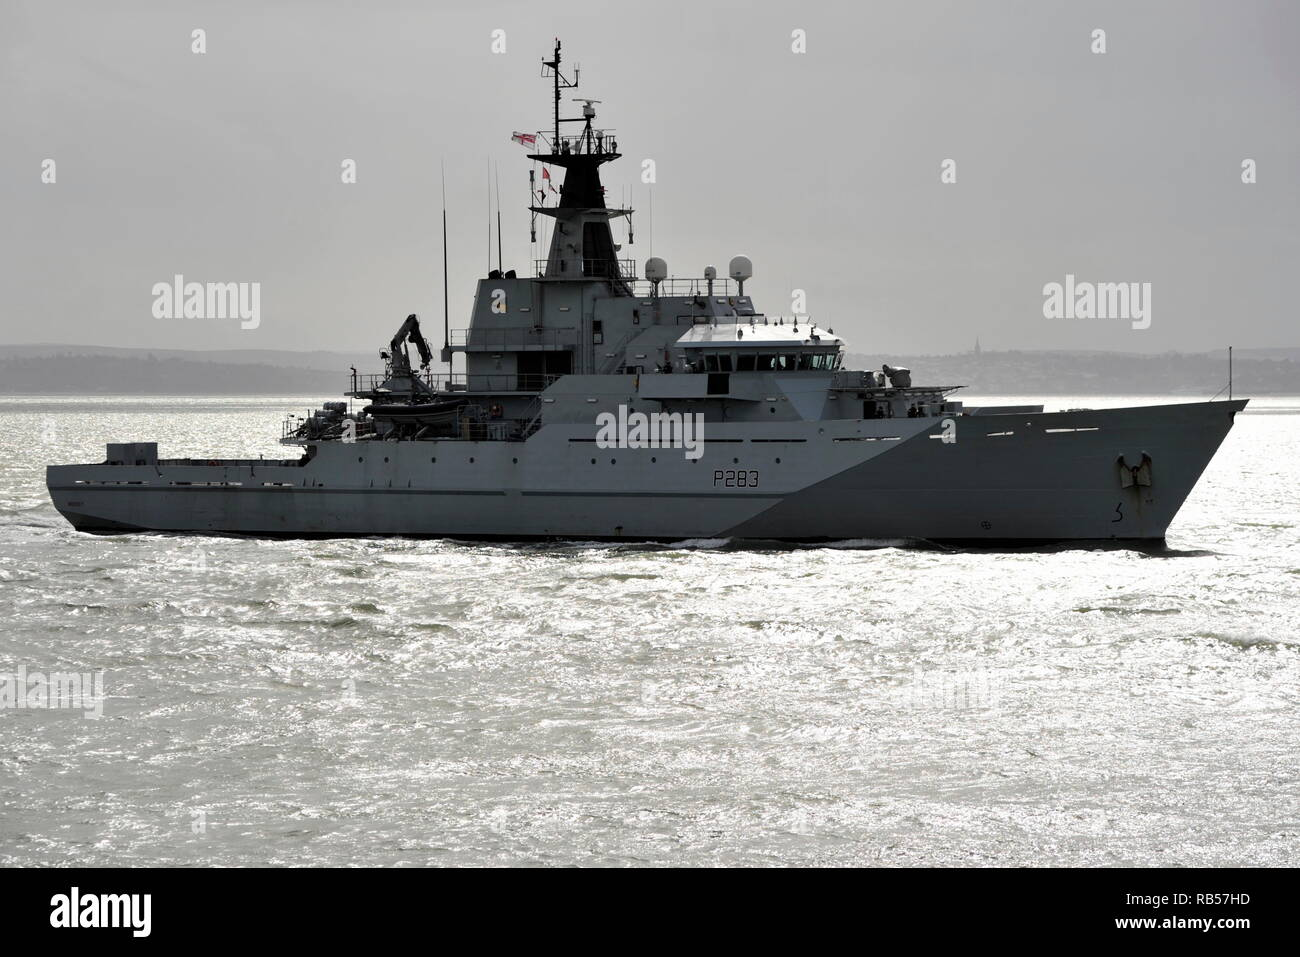 AJAXNETPH0TO. 1ST APRIL, 2015. PORTSMOUTH, ENGLAND. - PATROL SHP - HMS MERSEY (P283) ENTERING HARBOUR. UPDATE 7TH JAN 2019; ROYAL NAVY DEPLOYED HMS MERSEY TO CHANNEL TO 'HELP PREVENT MIGRANTS MAKING THE DANGEROUS JOURNEY.'. PHOTO:TONY HOLLAND/AJAX REF;DTH150104_37417 - Stock Image